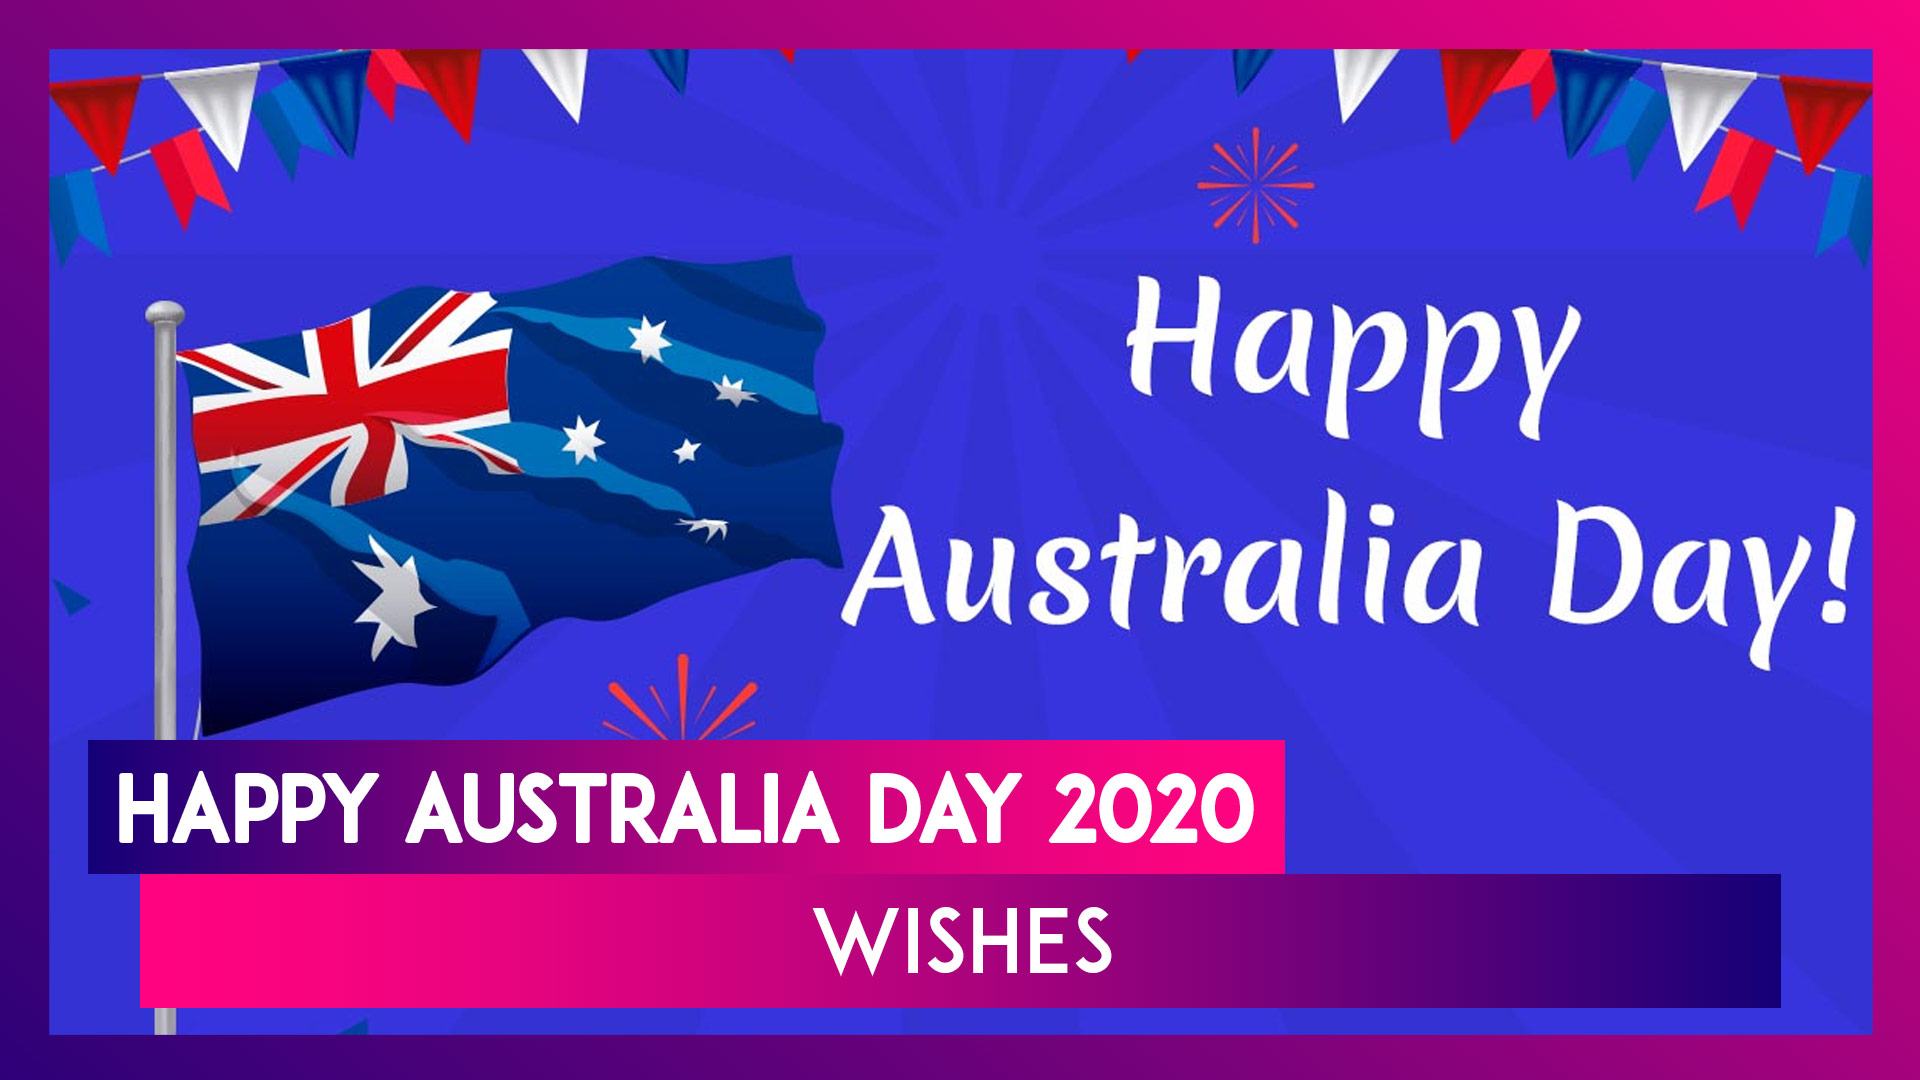 Happy Australia Day 2020 Wishes: WhatsApp Messages, Quotes, Status & Images To Send On January 26